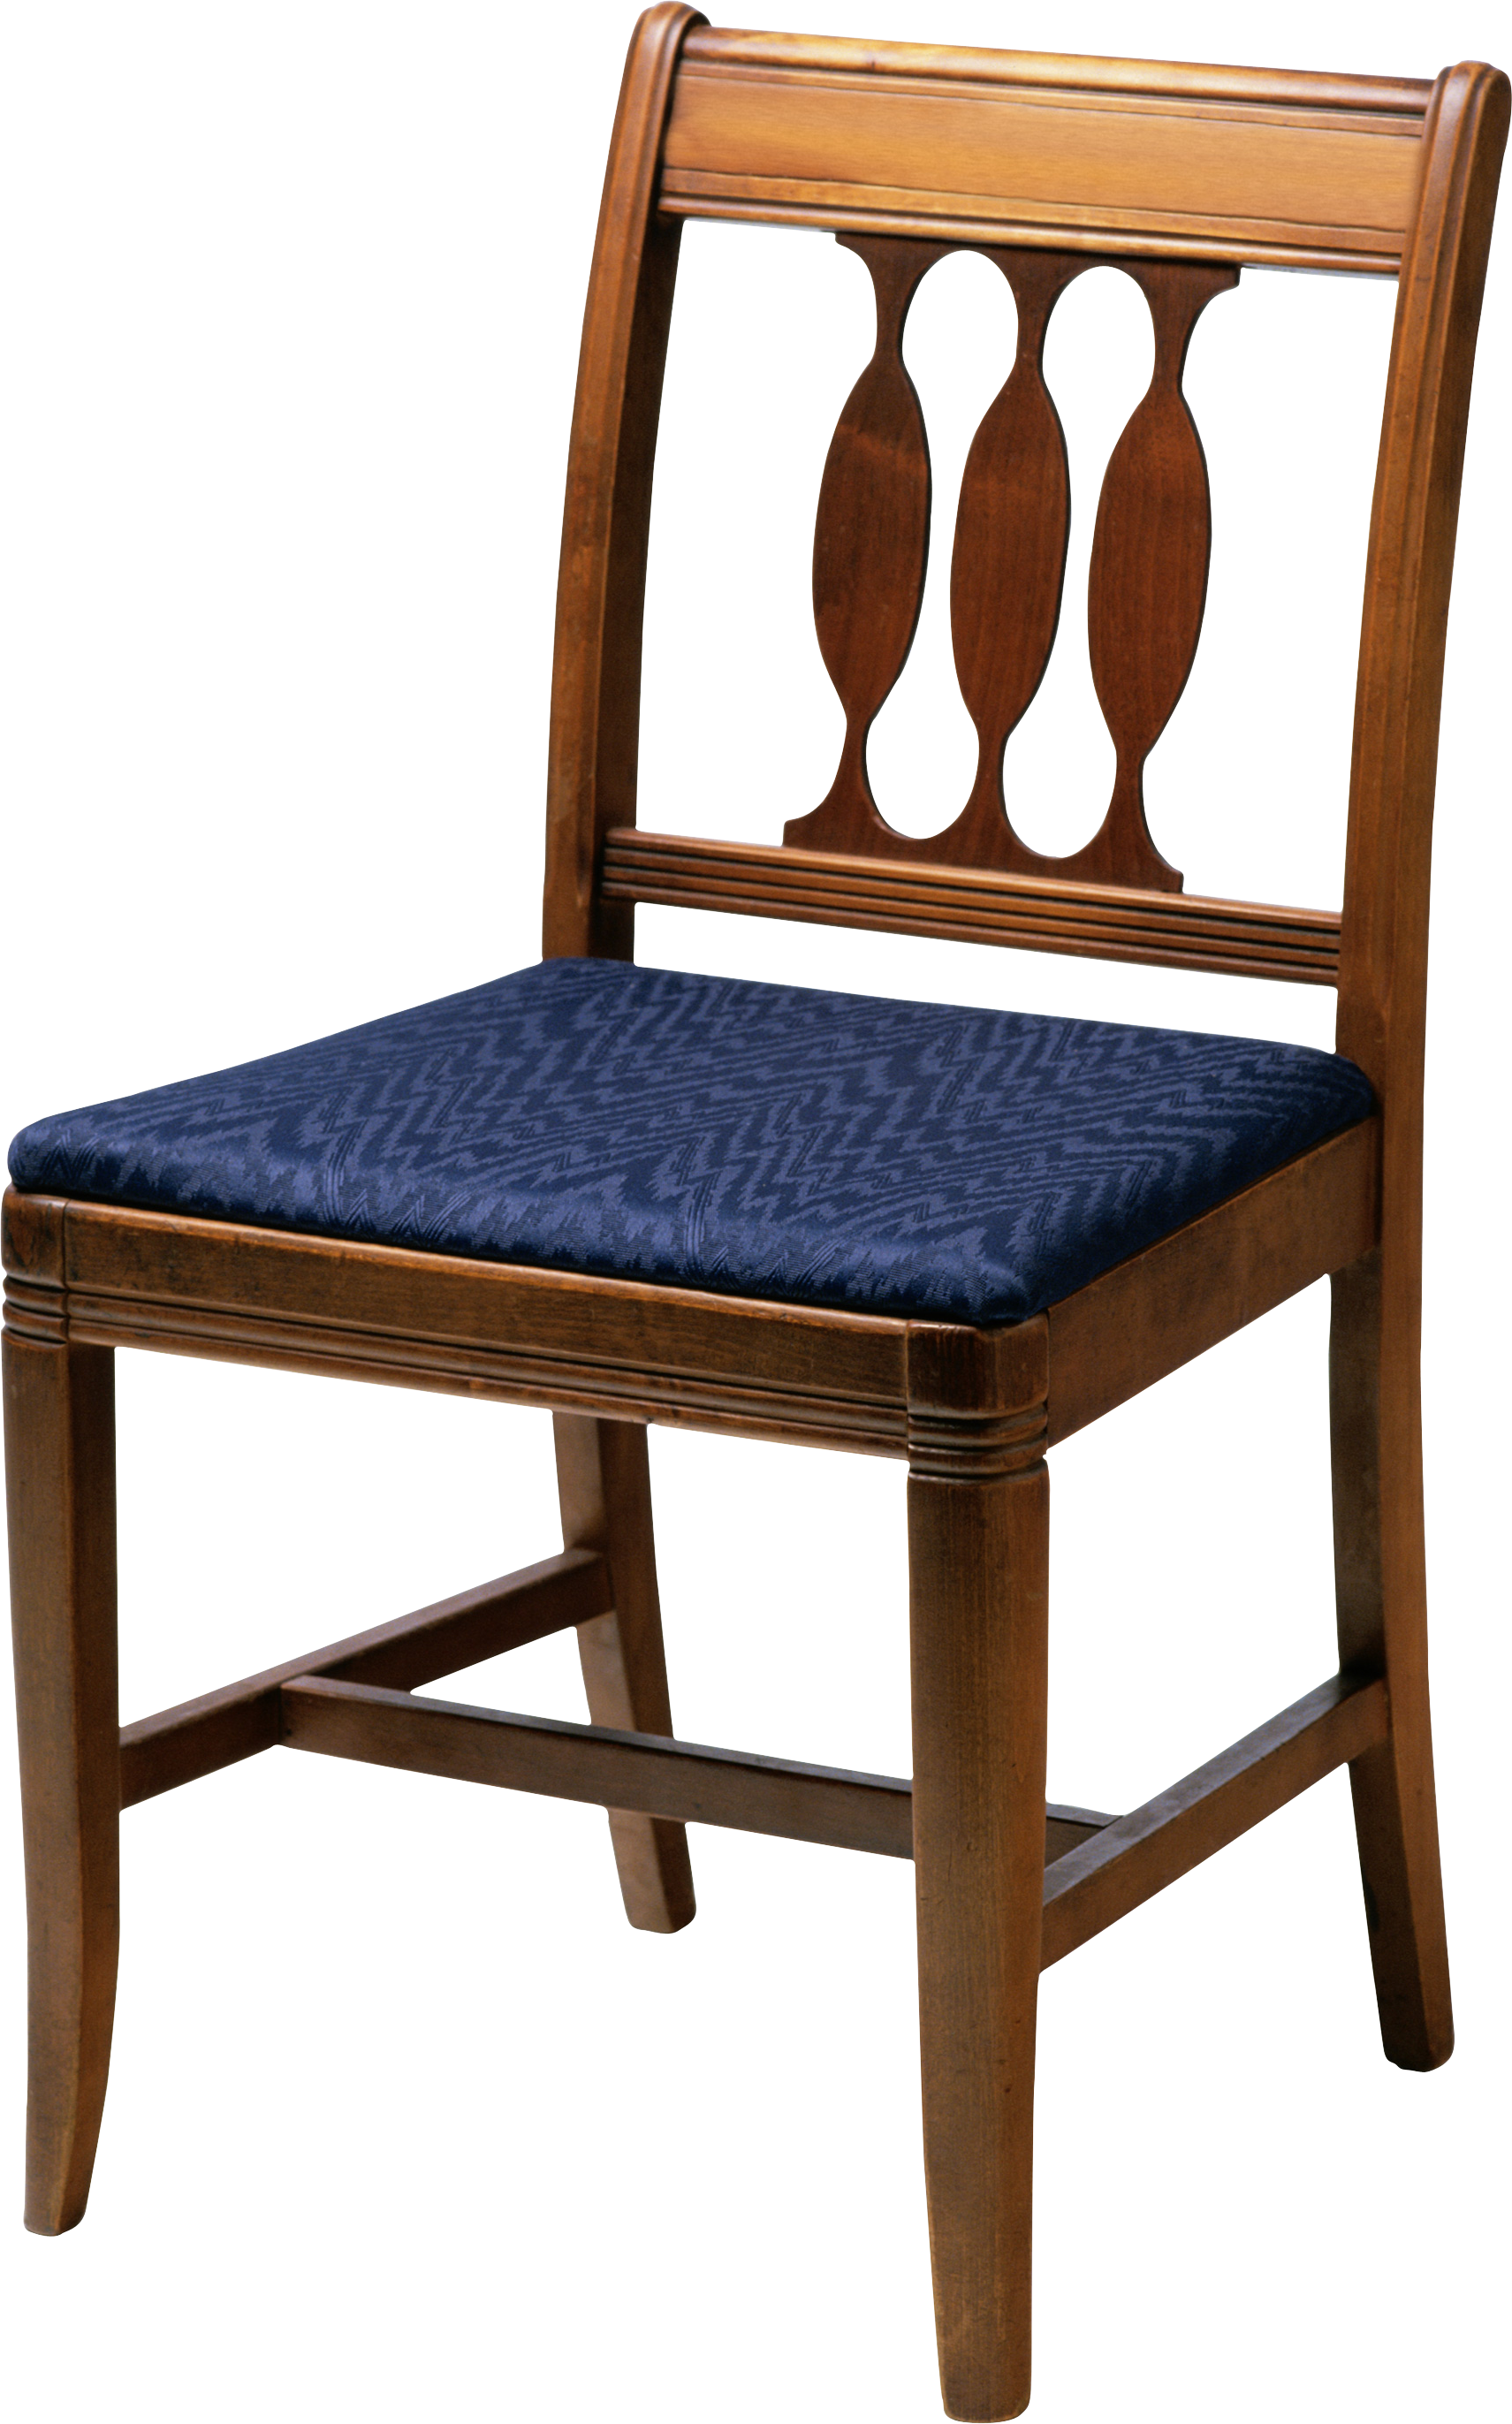 Chair PNG image